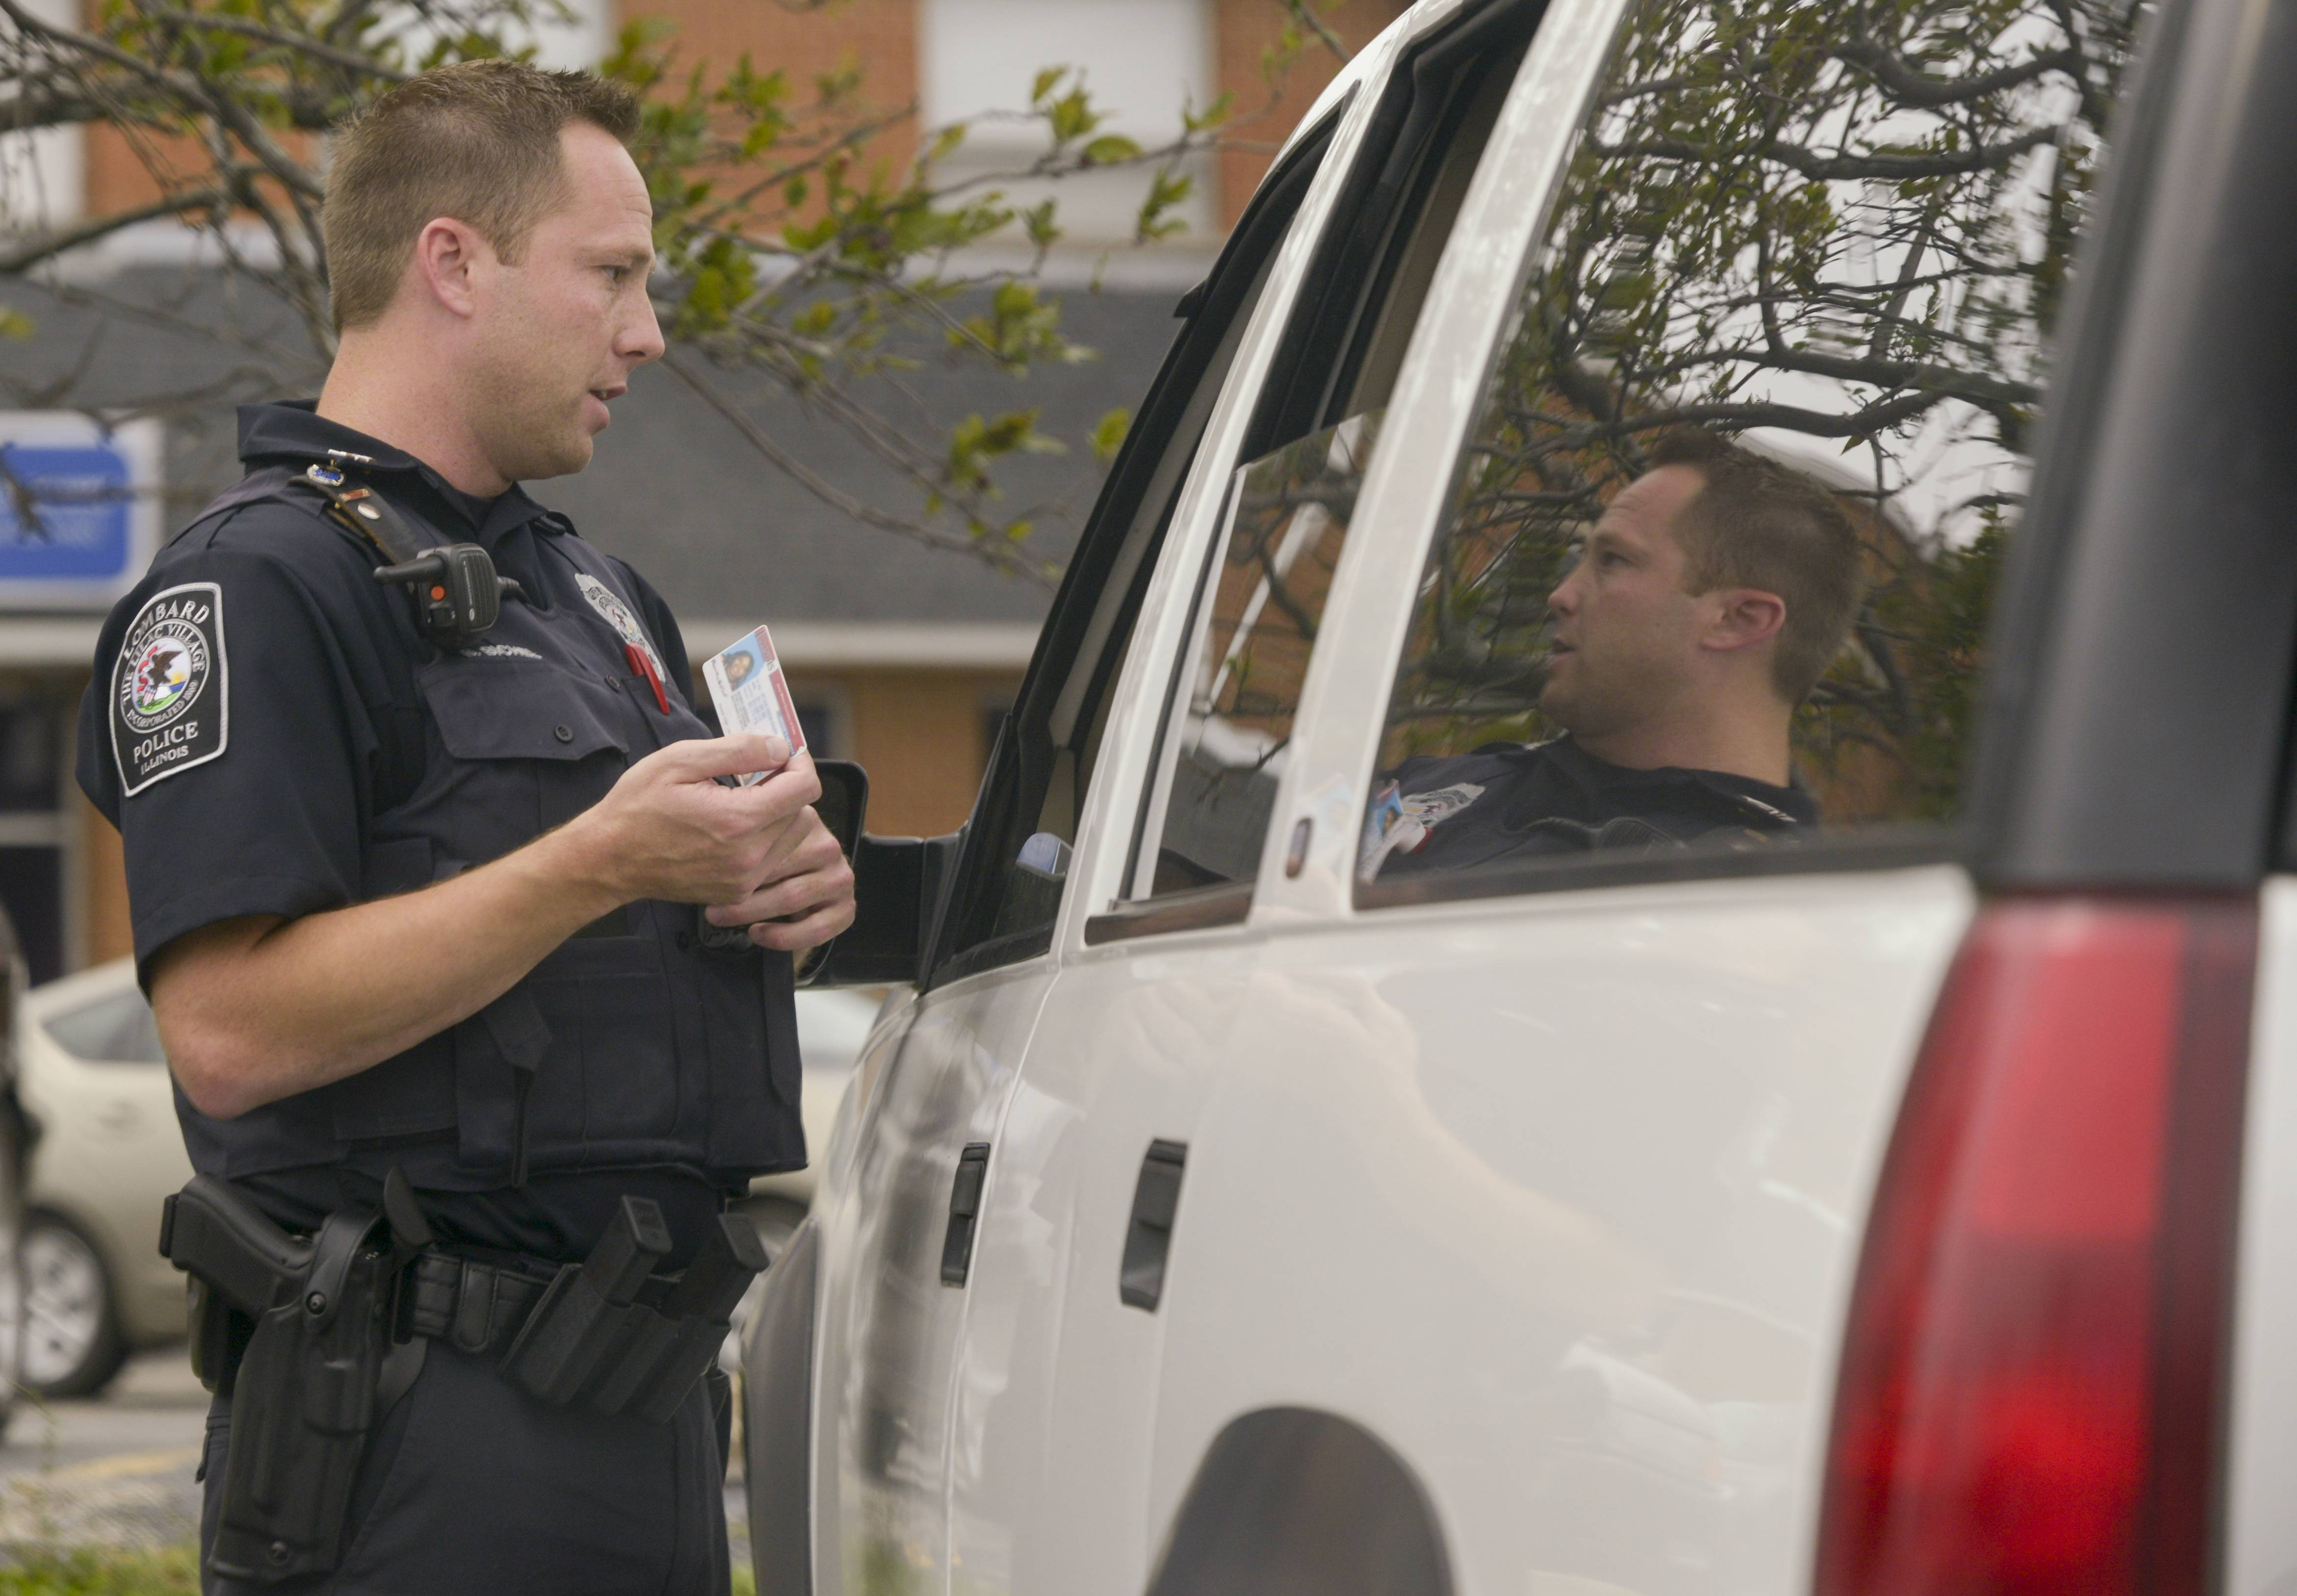 Lombard police officer Brad Bichel stops Wanda Hubbard of Maywood for talking on a cellphone. Hubbard, who normally uses a Bluetooth device but had forgotten it, was let off with a warning.